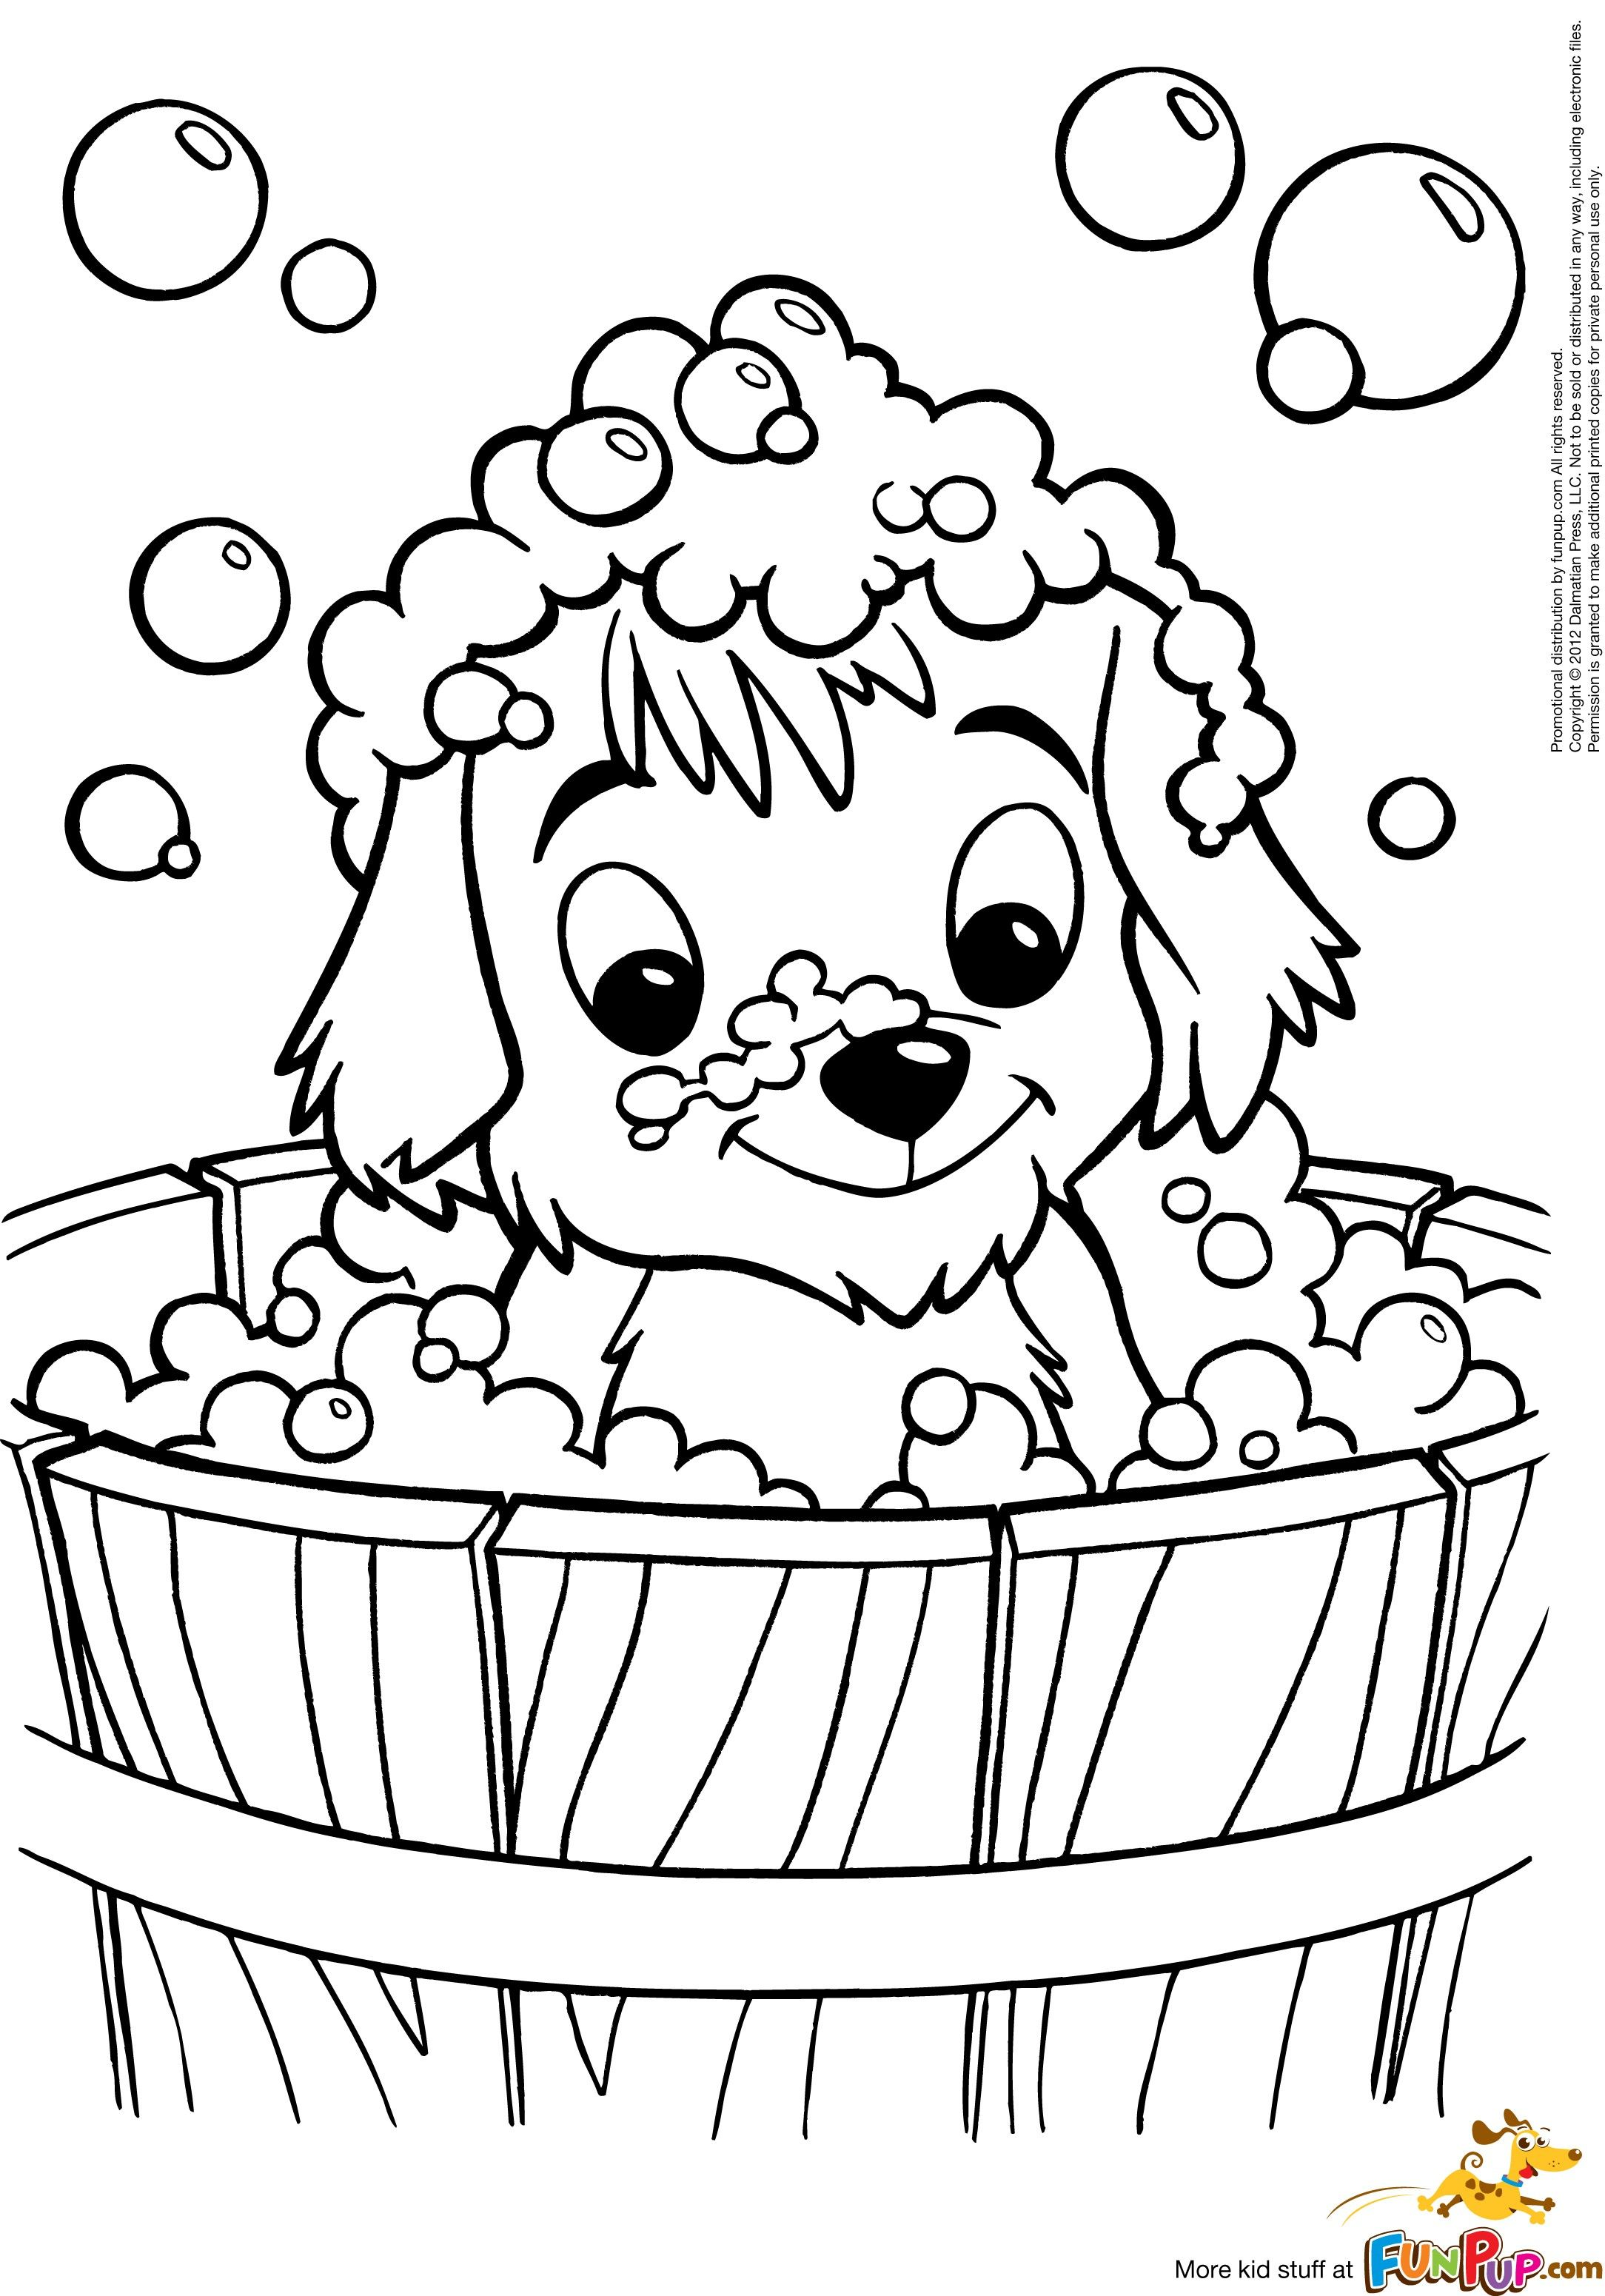 Cute Puppy Coloring Pages New Page Puppy Coloring Pages Dog